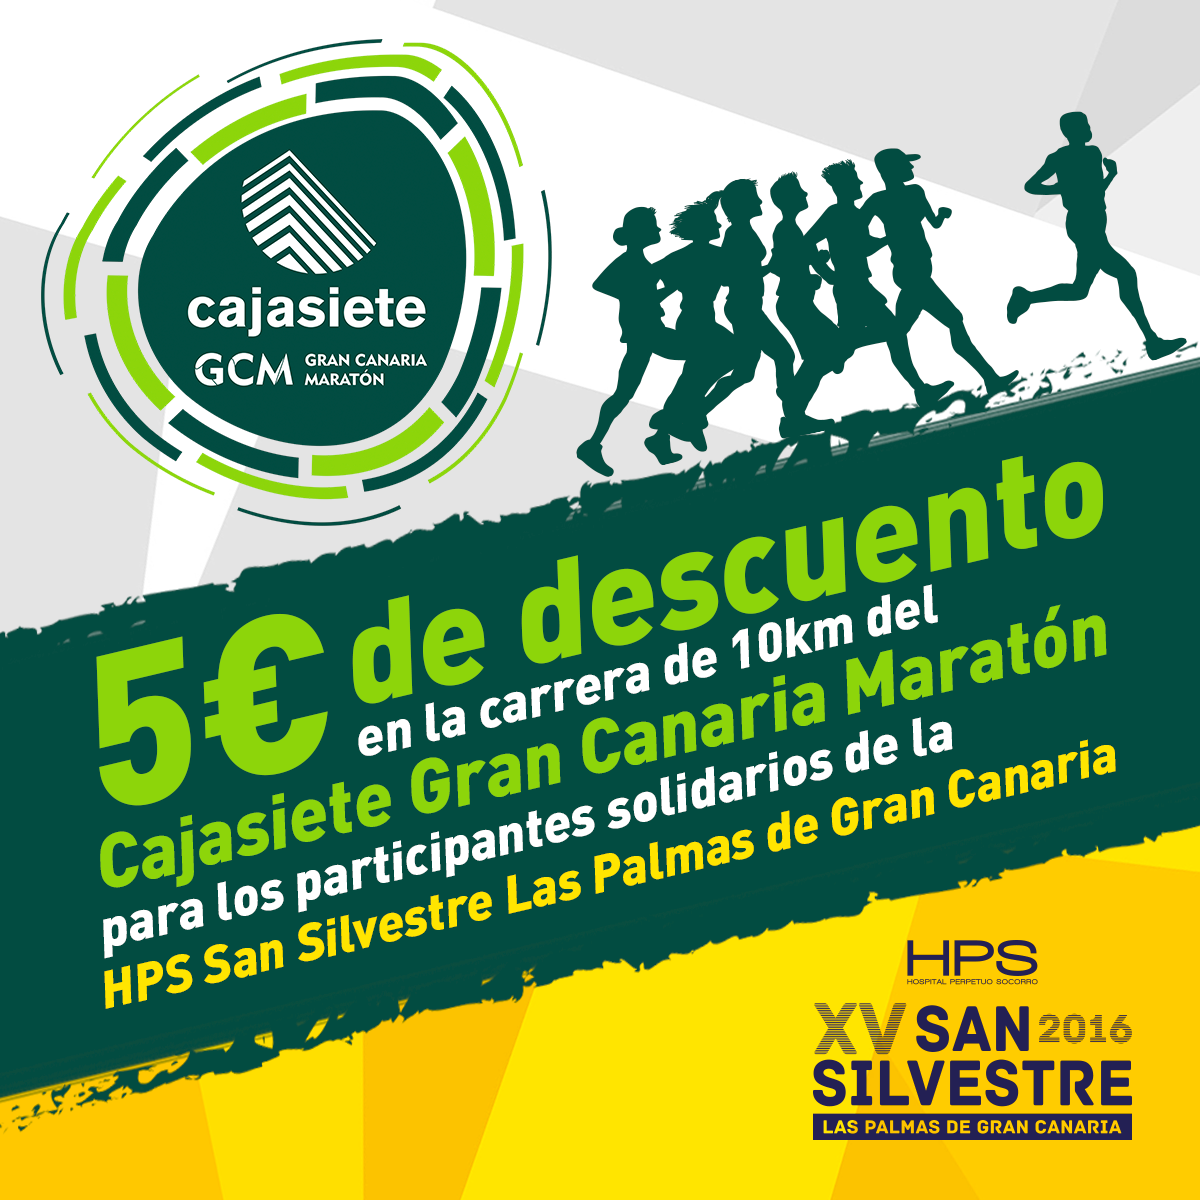 AGREEMENT BETWEEN THE CAJASIETE GRAN CANARIA MARATHON AND THE HOSPITAL PERPETUO SOCORRO SAN SILVESTRE RACE